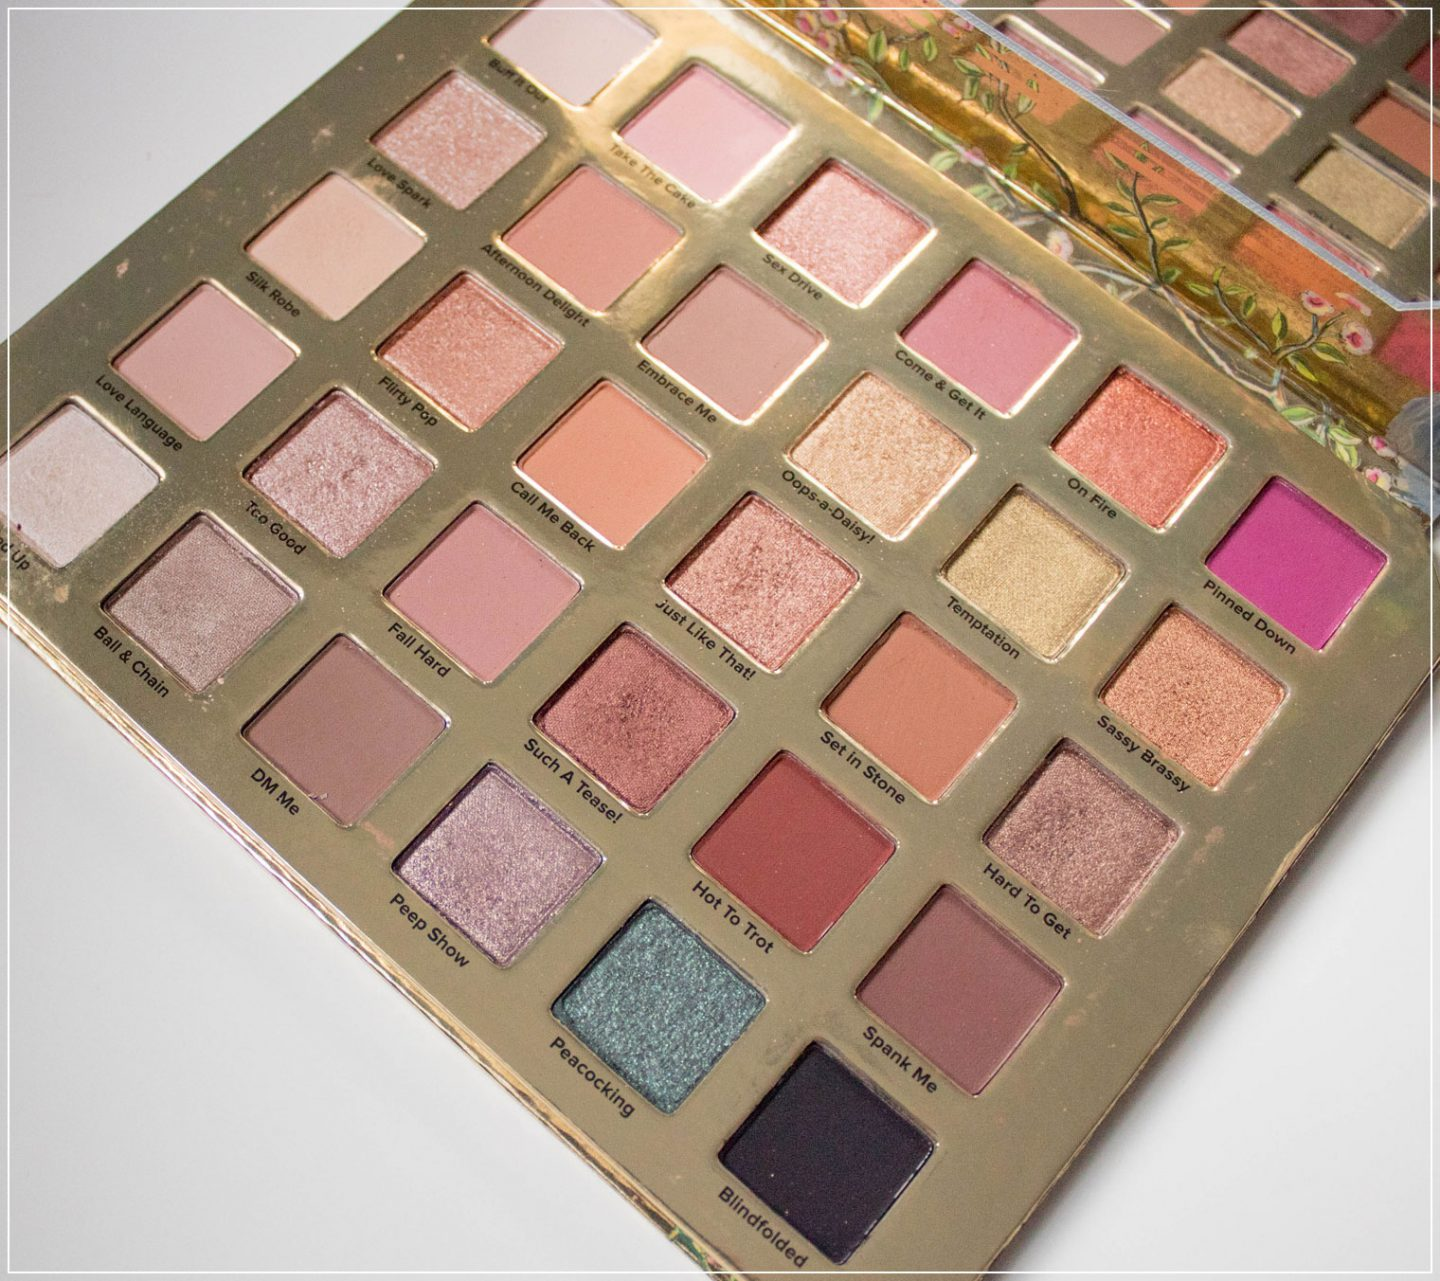 Too Faced, Natural Lust Palette, Weihnachts-Make-Up, Holiday Season, Festliches Make-Up, Lidschatten-Palette Beautytutorial, Make-up Tutorial, Beauty Blog, Beautybloggerin, Ruhrgebiet